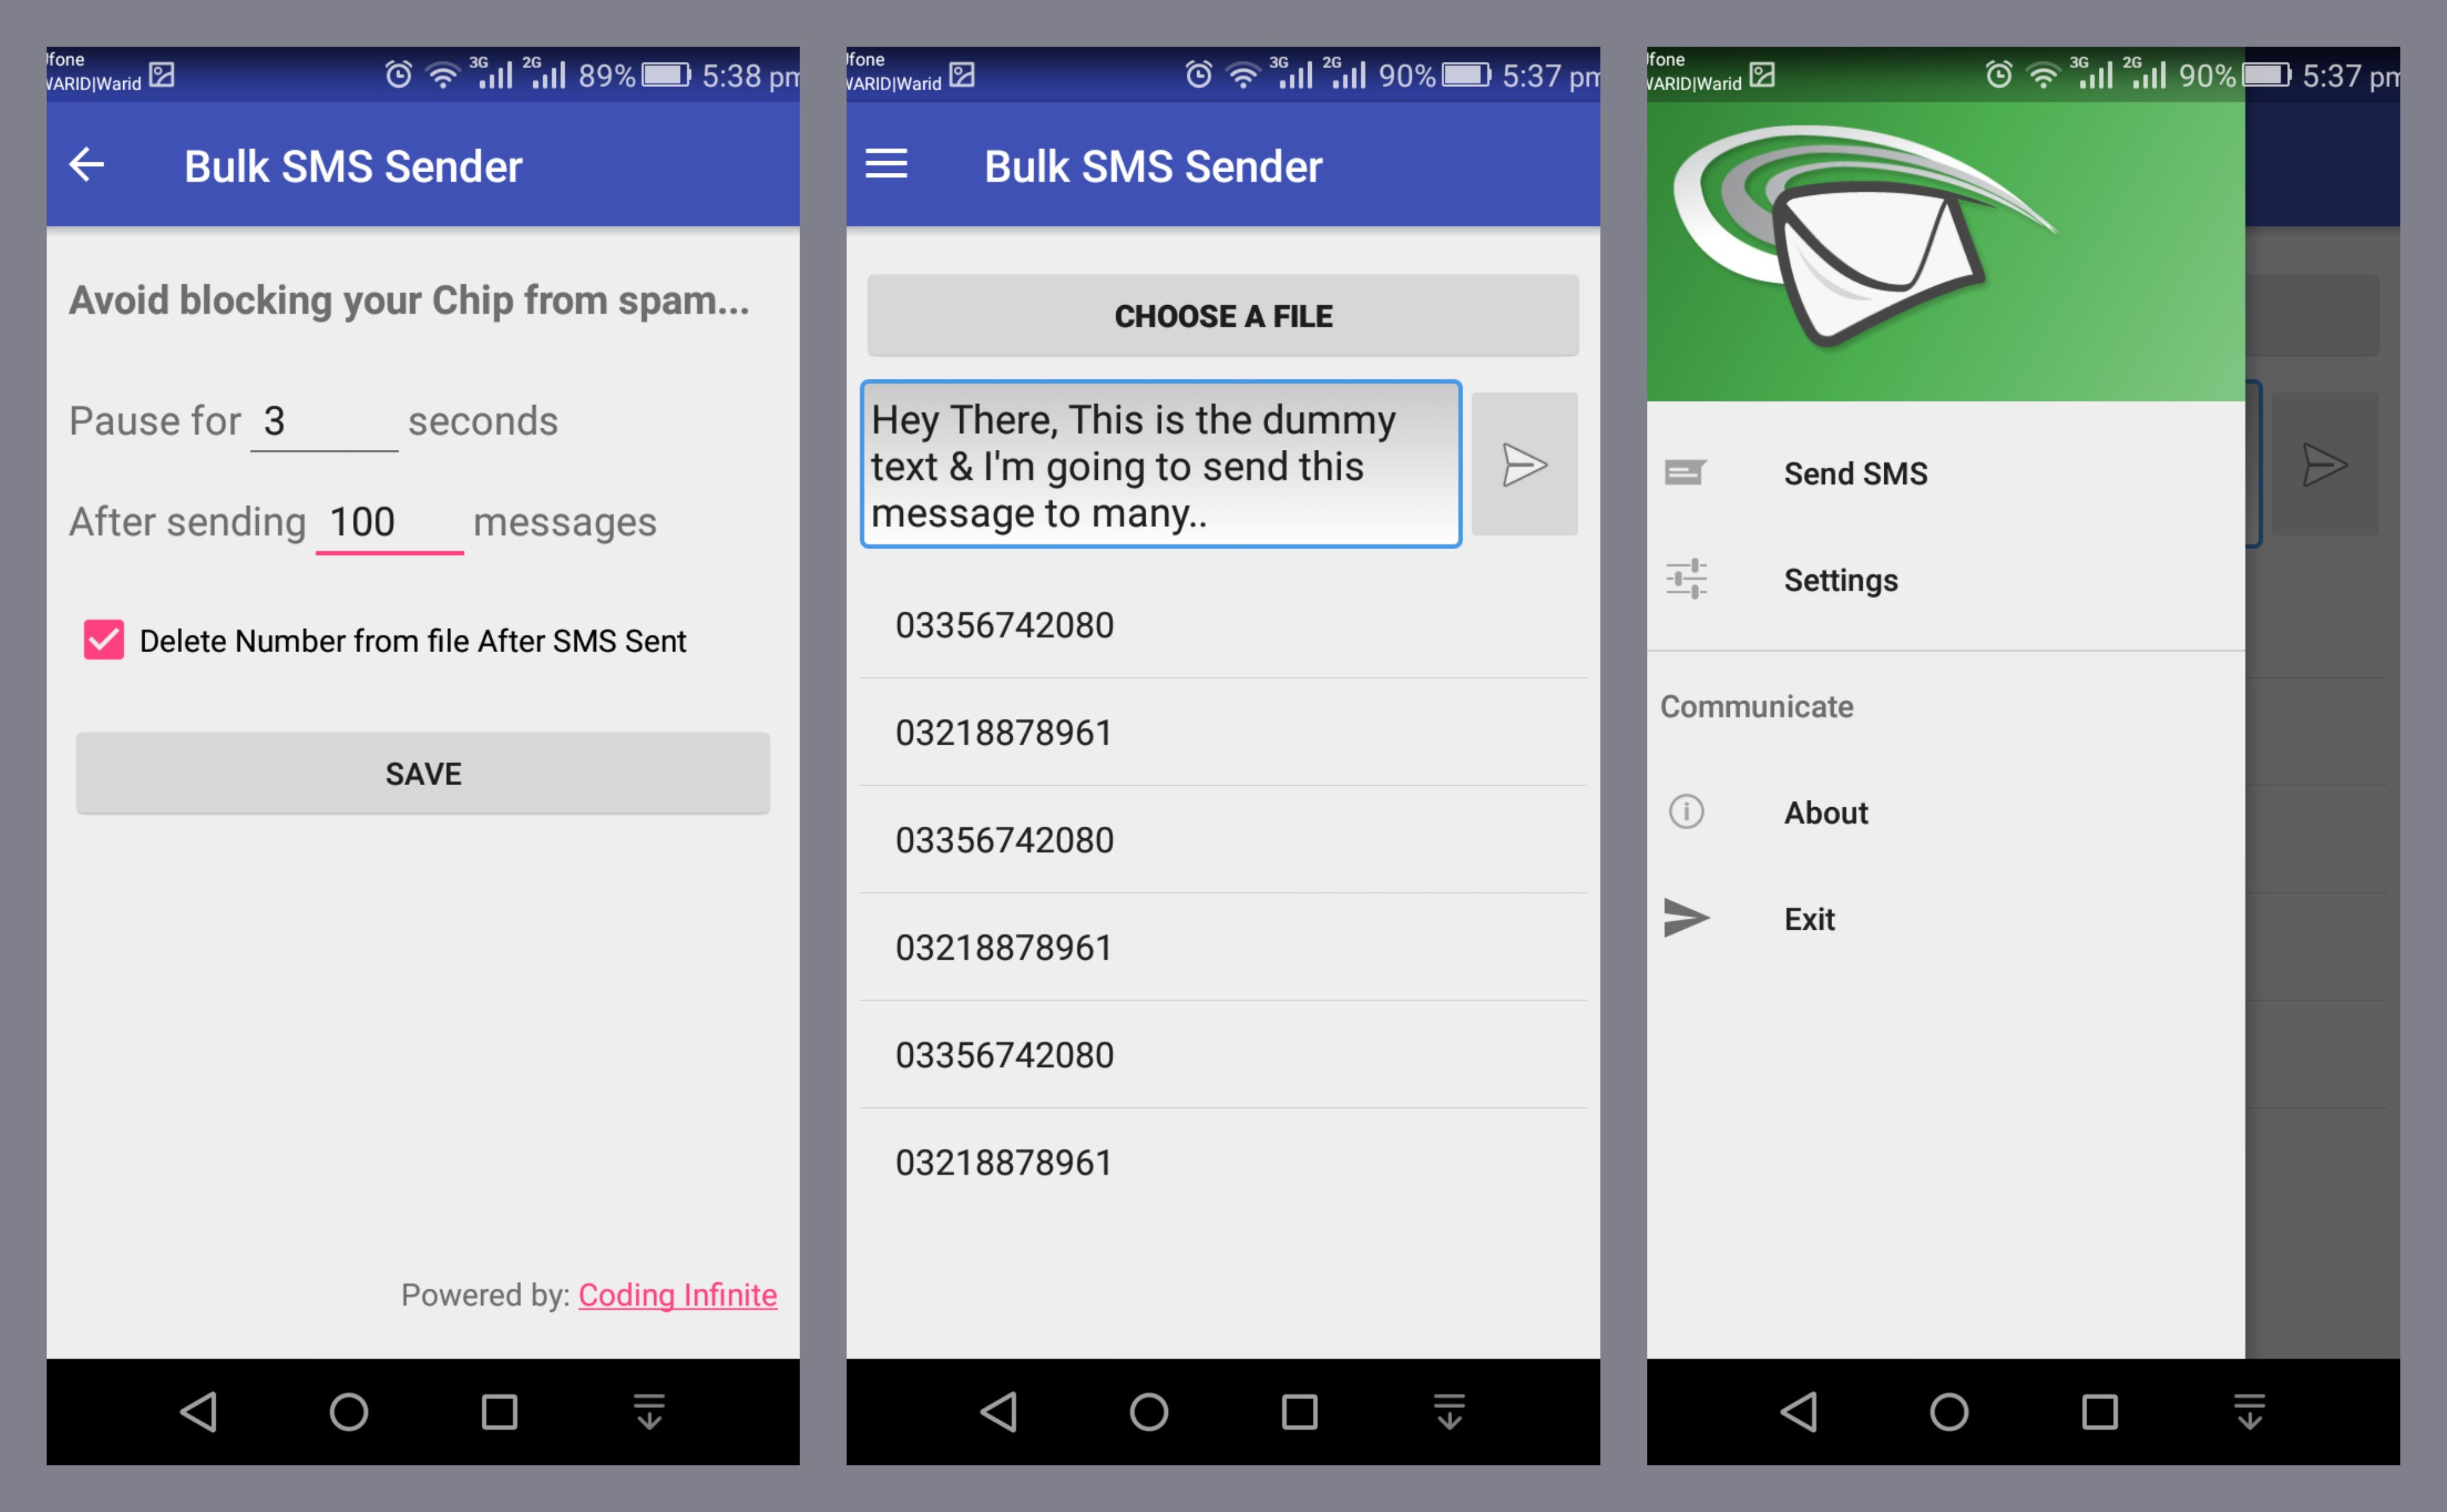 Bulk SMS Sender Open Source Android App